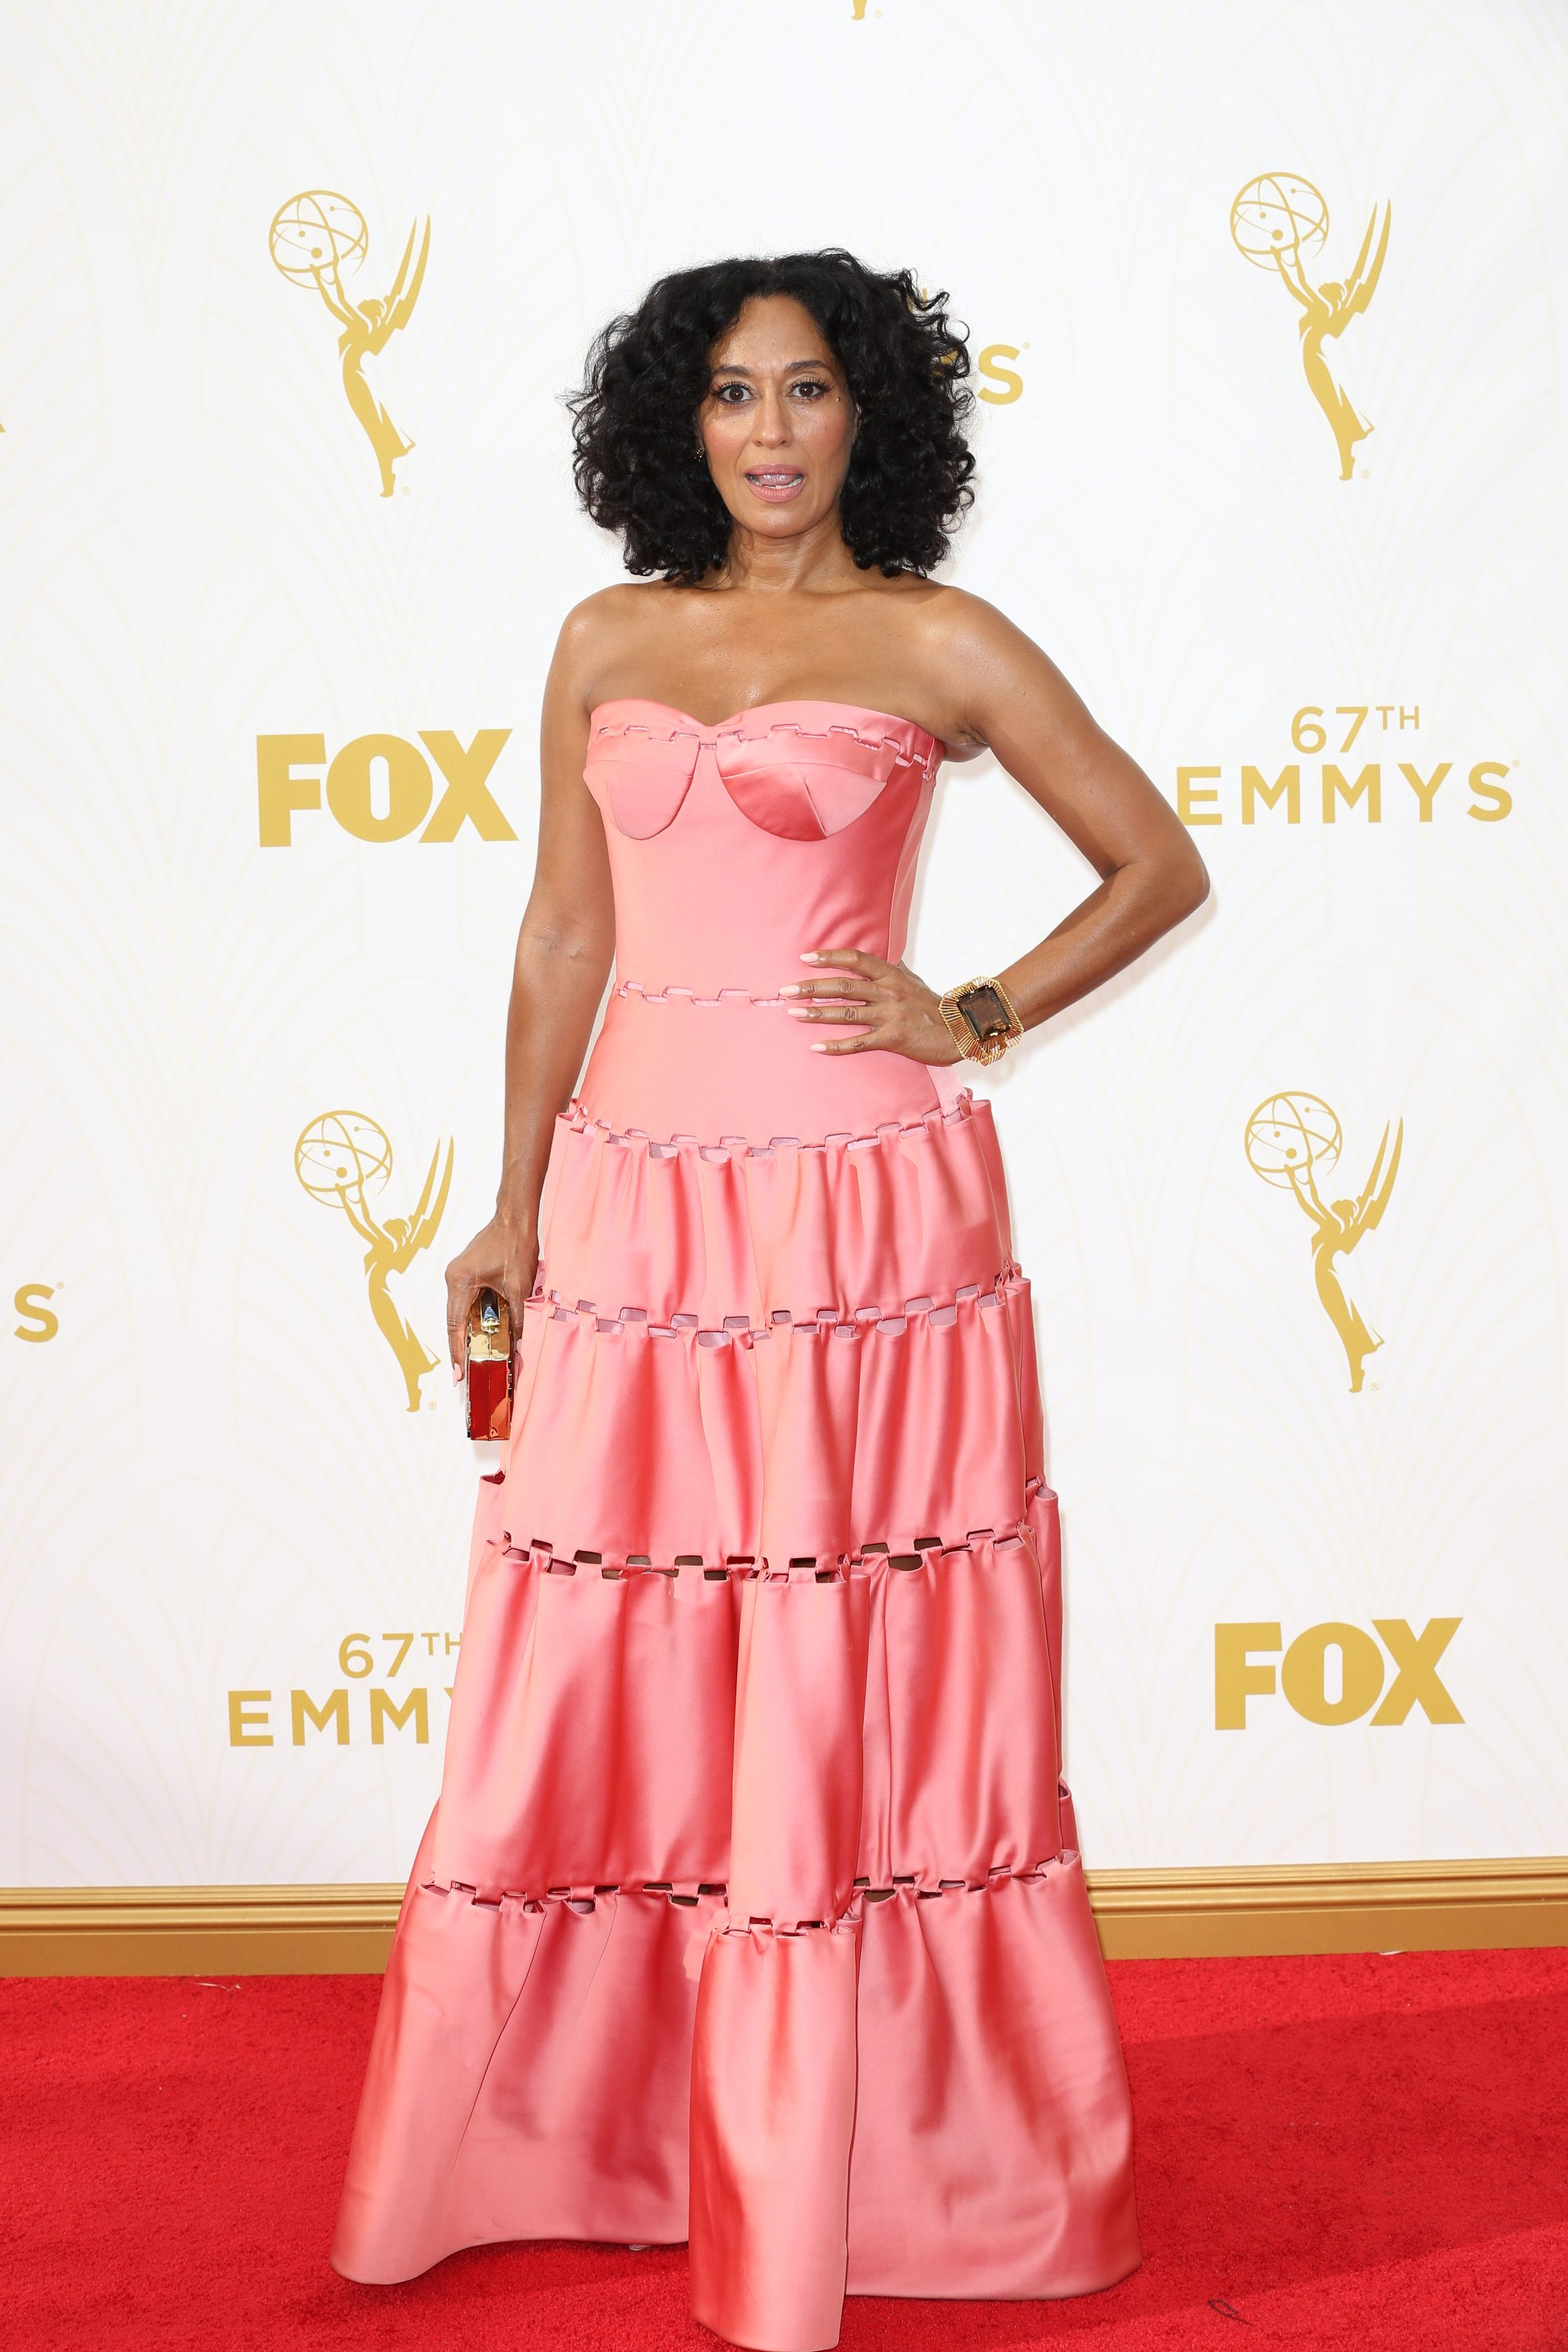 Celebrities arrive at 67th Emmys Red Carpet at Microsoft Theater.  Featuring: Tracee Ellis Ross Where: Los Angeles, California, United States When: 20 Sep 2015 Credit: Brian To/WENN.com